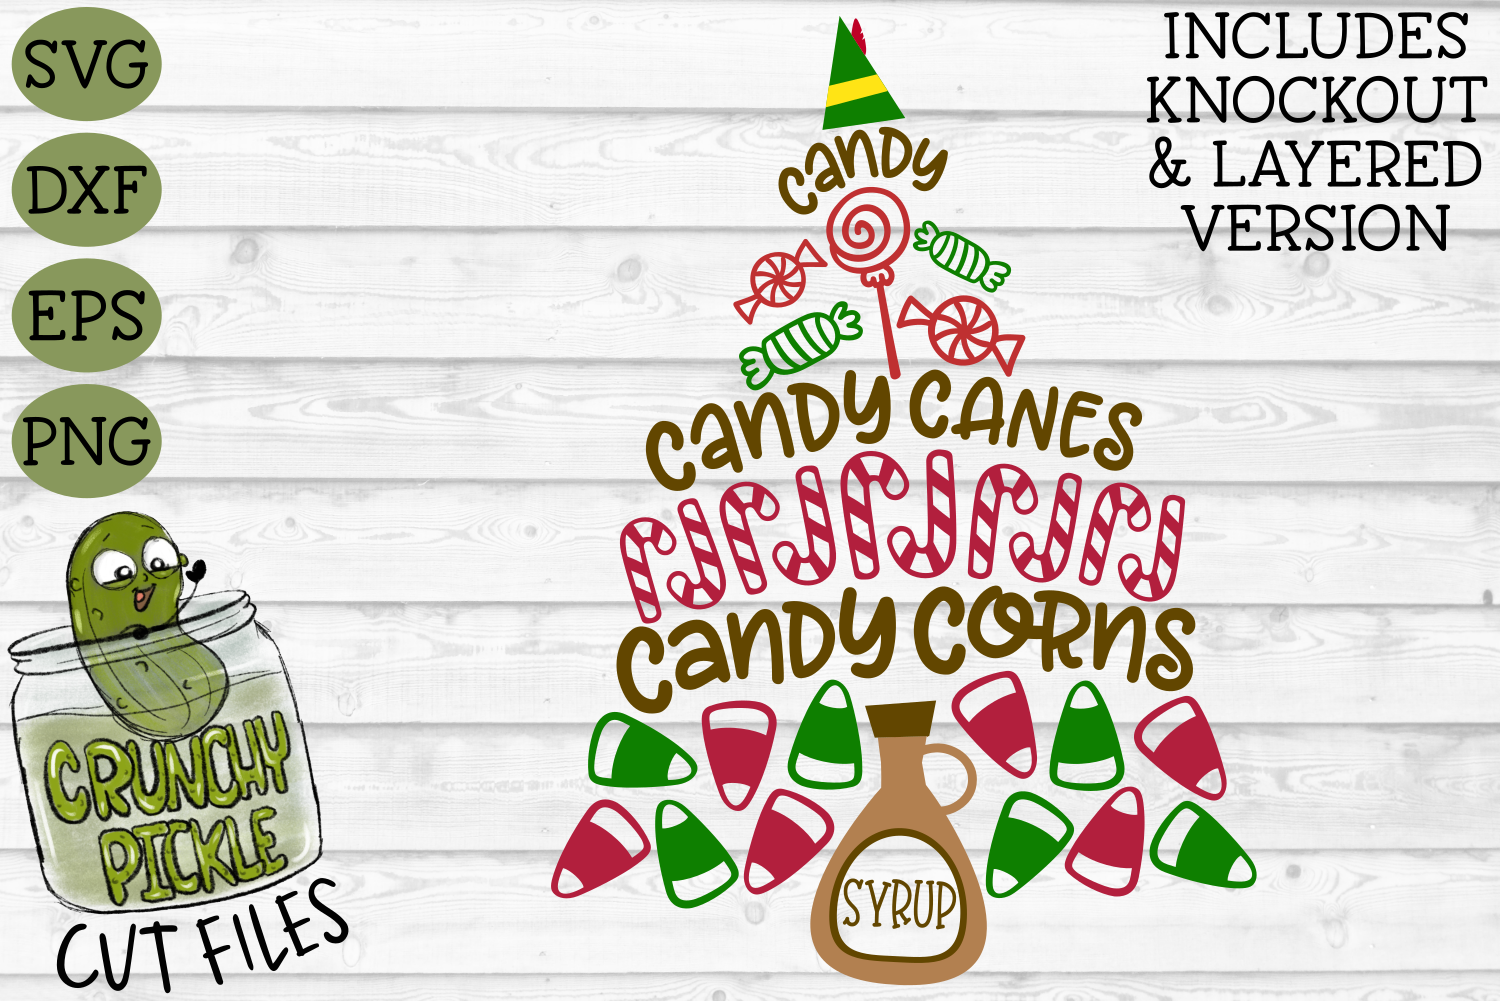 Candy & Syrup Elf Diet Christmas Phrase SVG example image 2